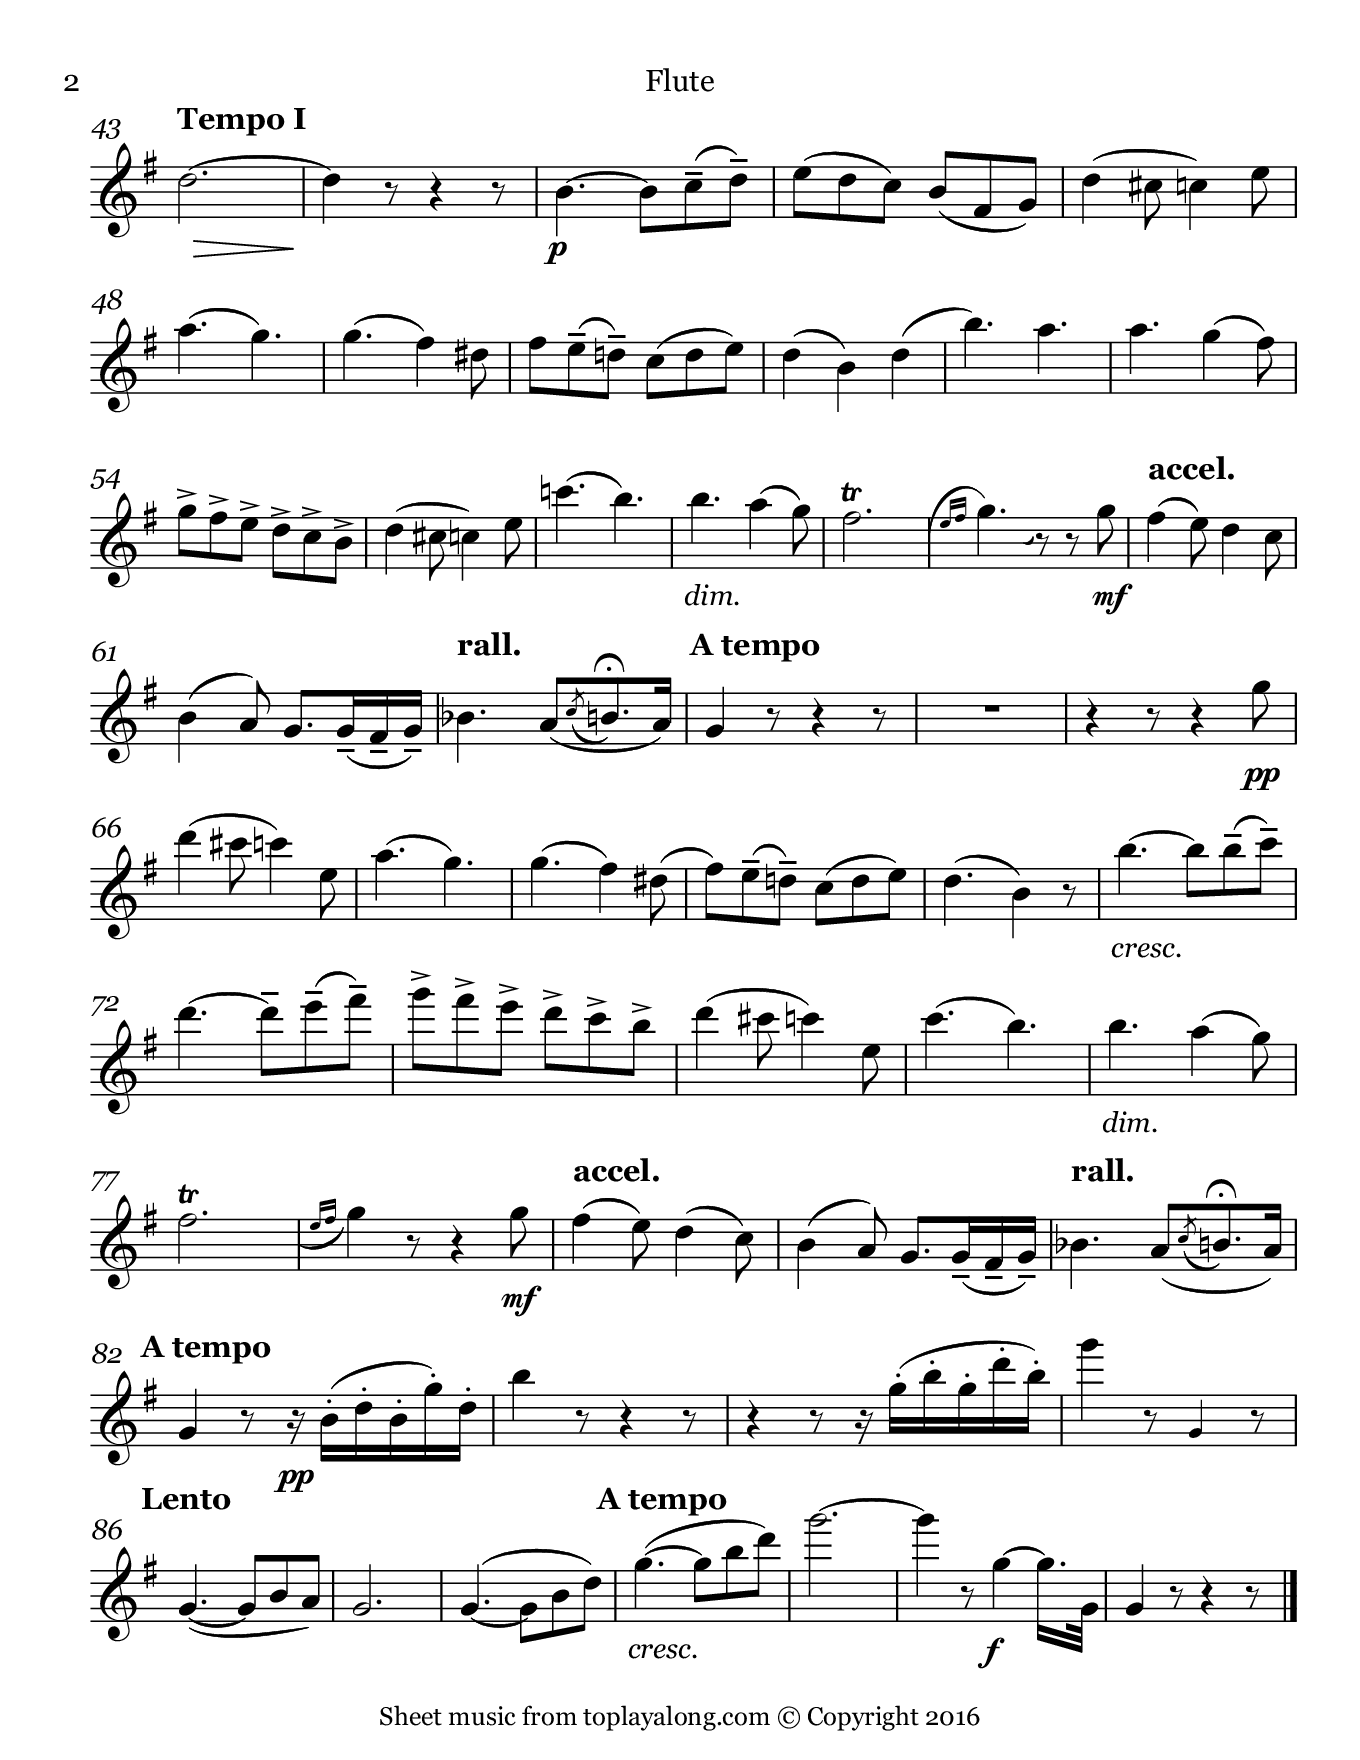 La seranata (Angel's Serenade) by Braga. Sheet music for Flute, page 2.